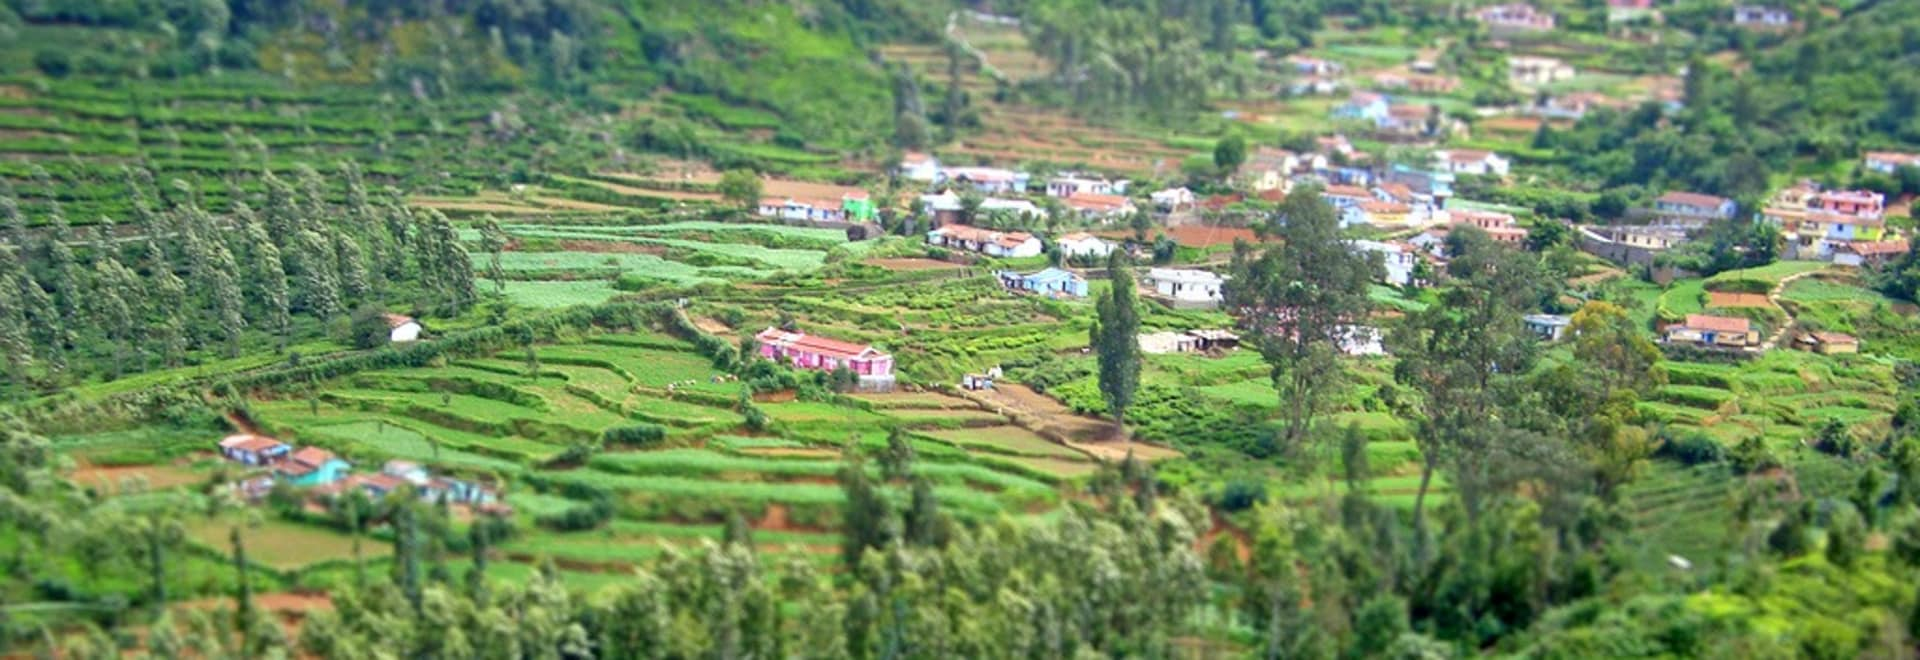 10 Best Hill Stations near Hyderabad